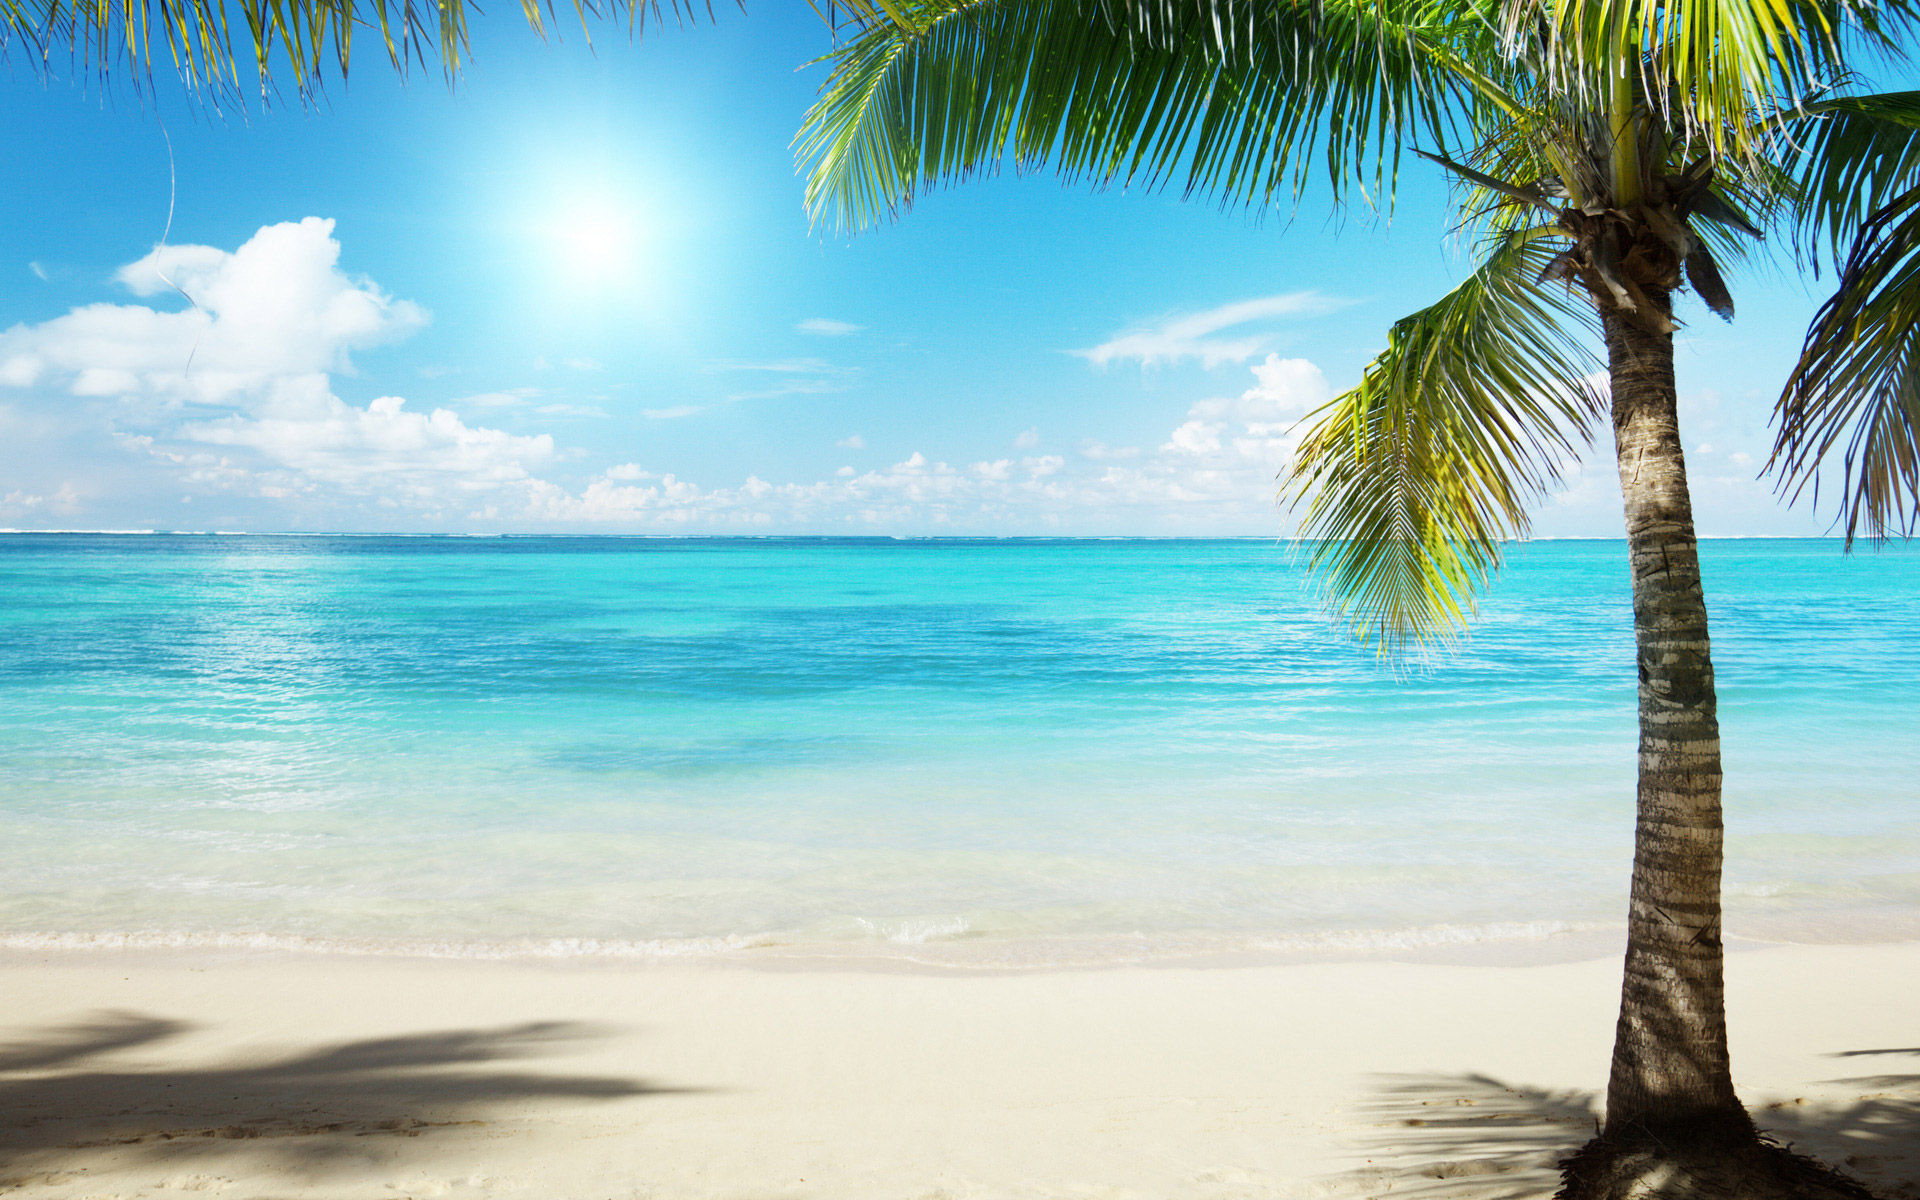 Beach HD Wallpaper 2015 for Desktop beautiful beach wallpaper 1920x1200